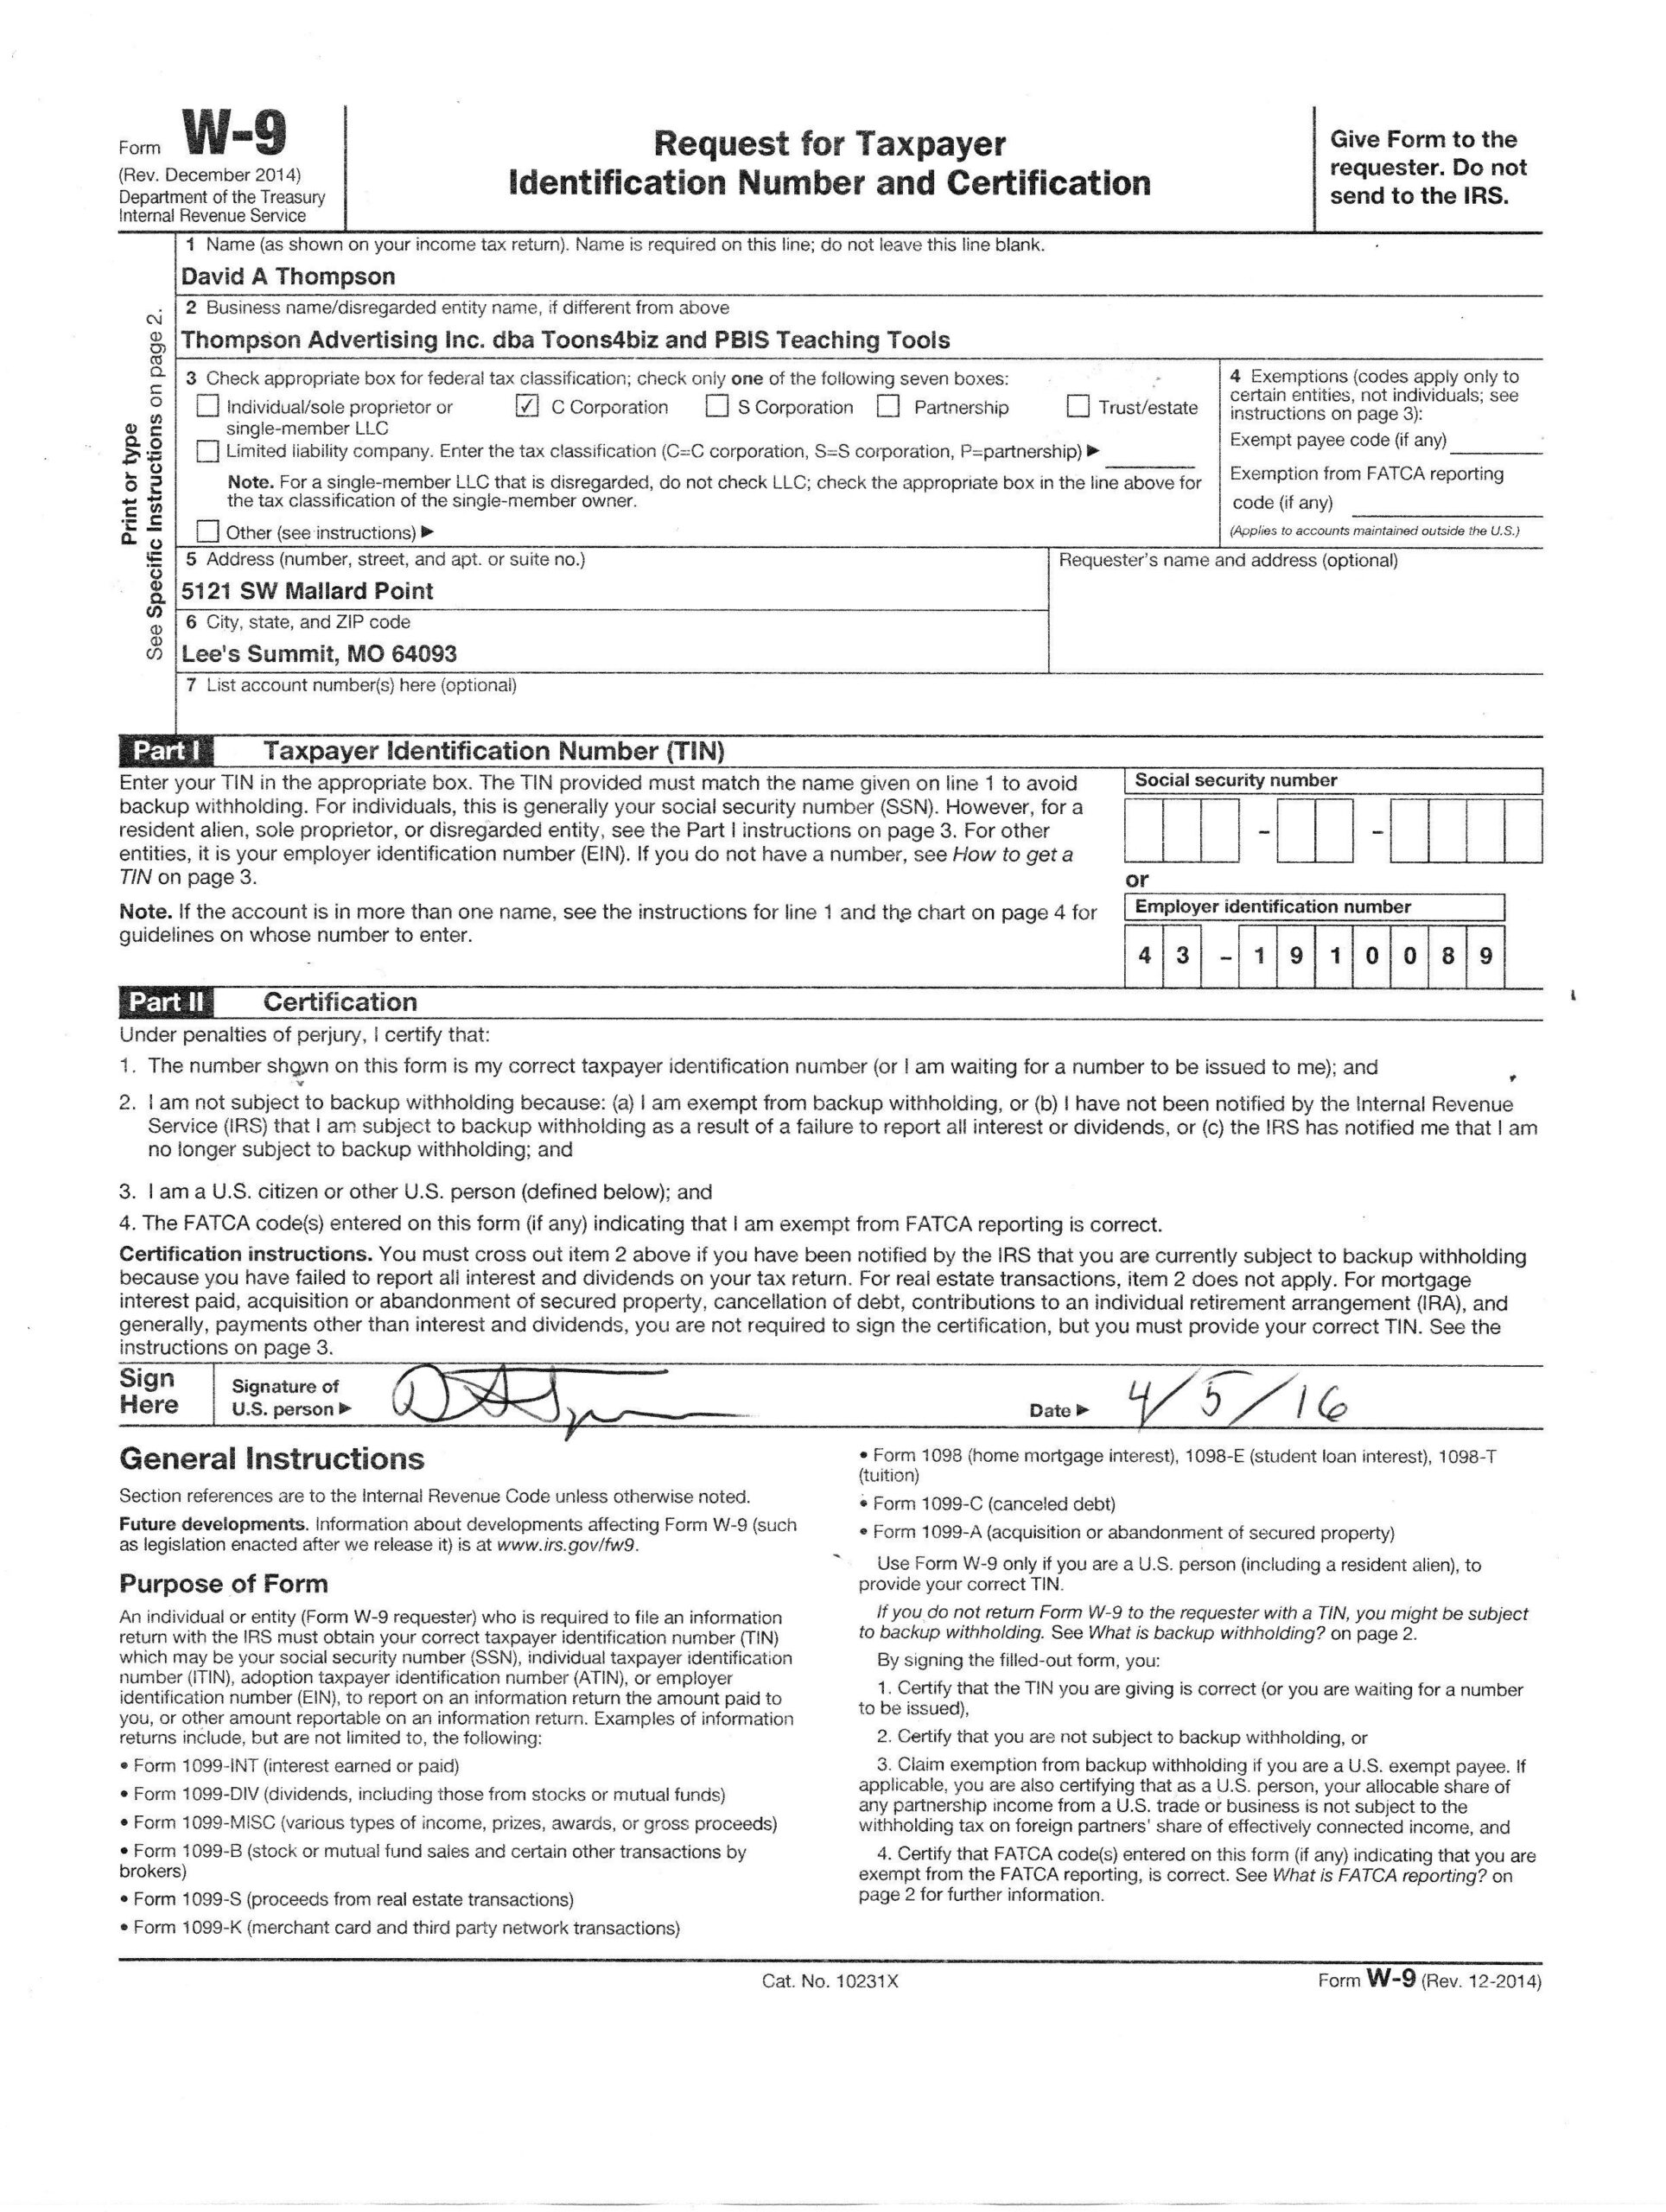 Downloadable W 9 Form W9 Form Mascot Junction In 2020 inside Irs W-9 Printable Form